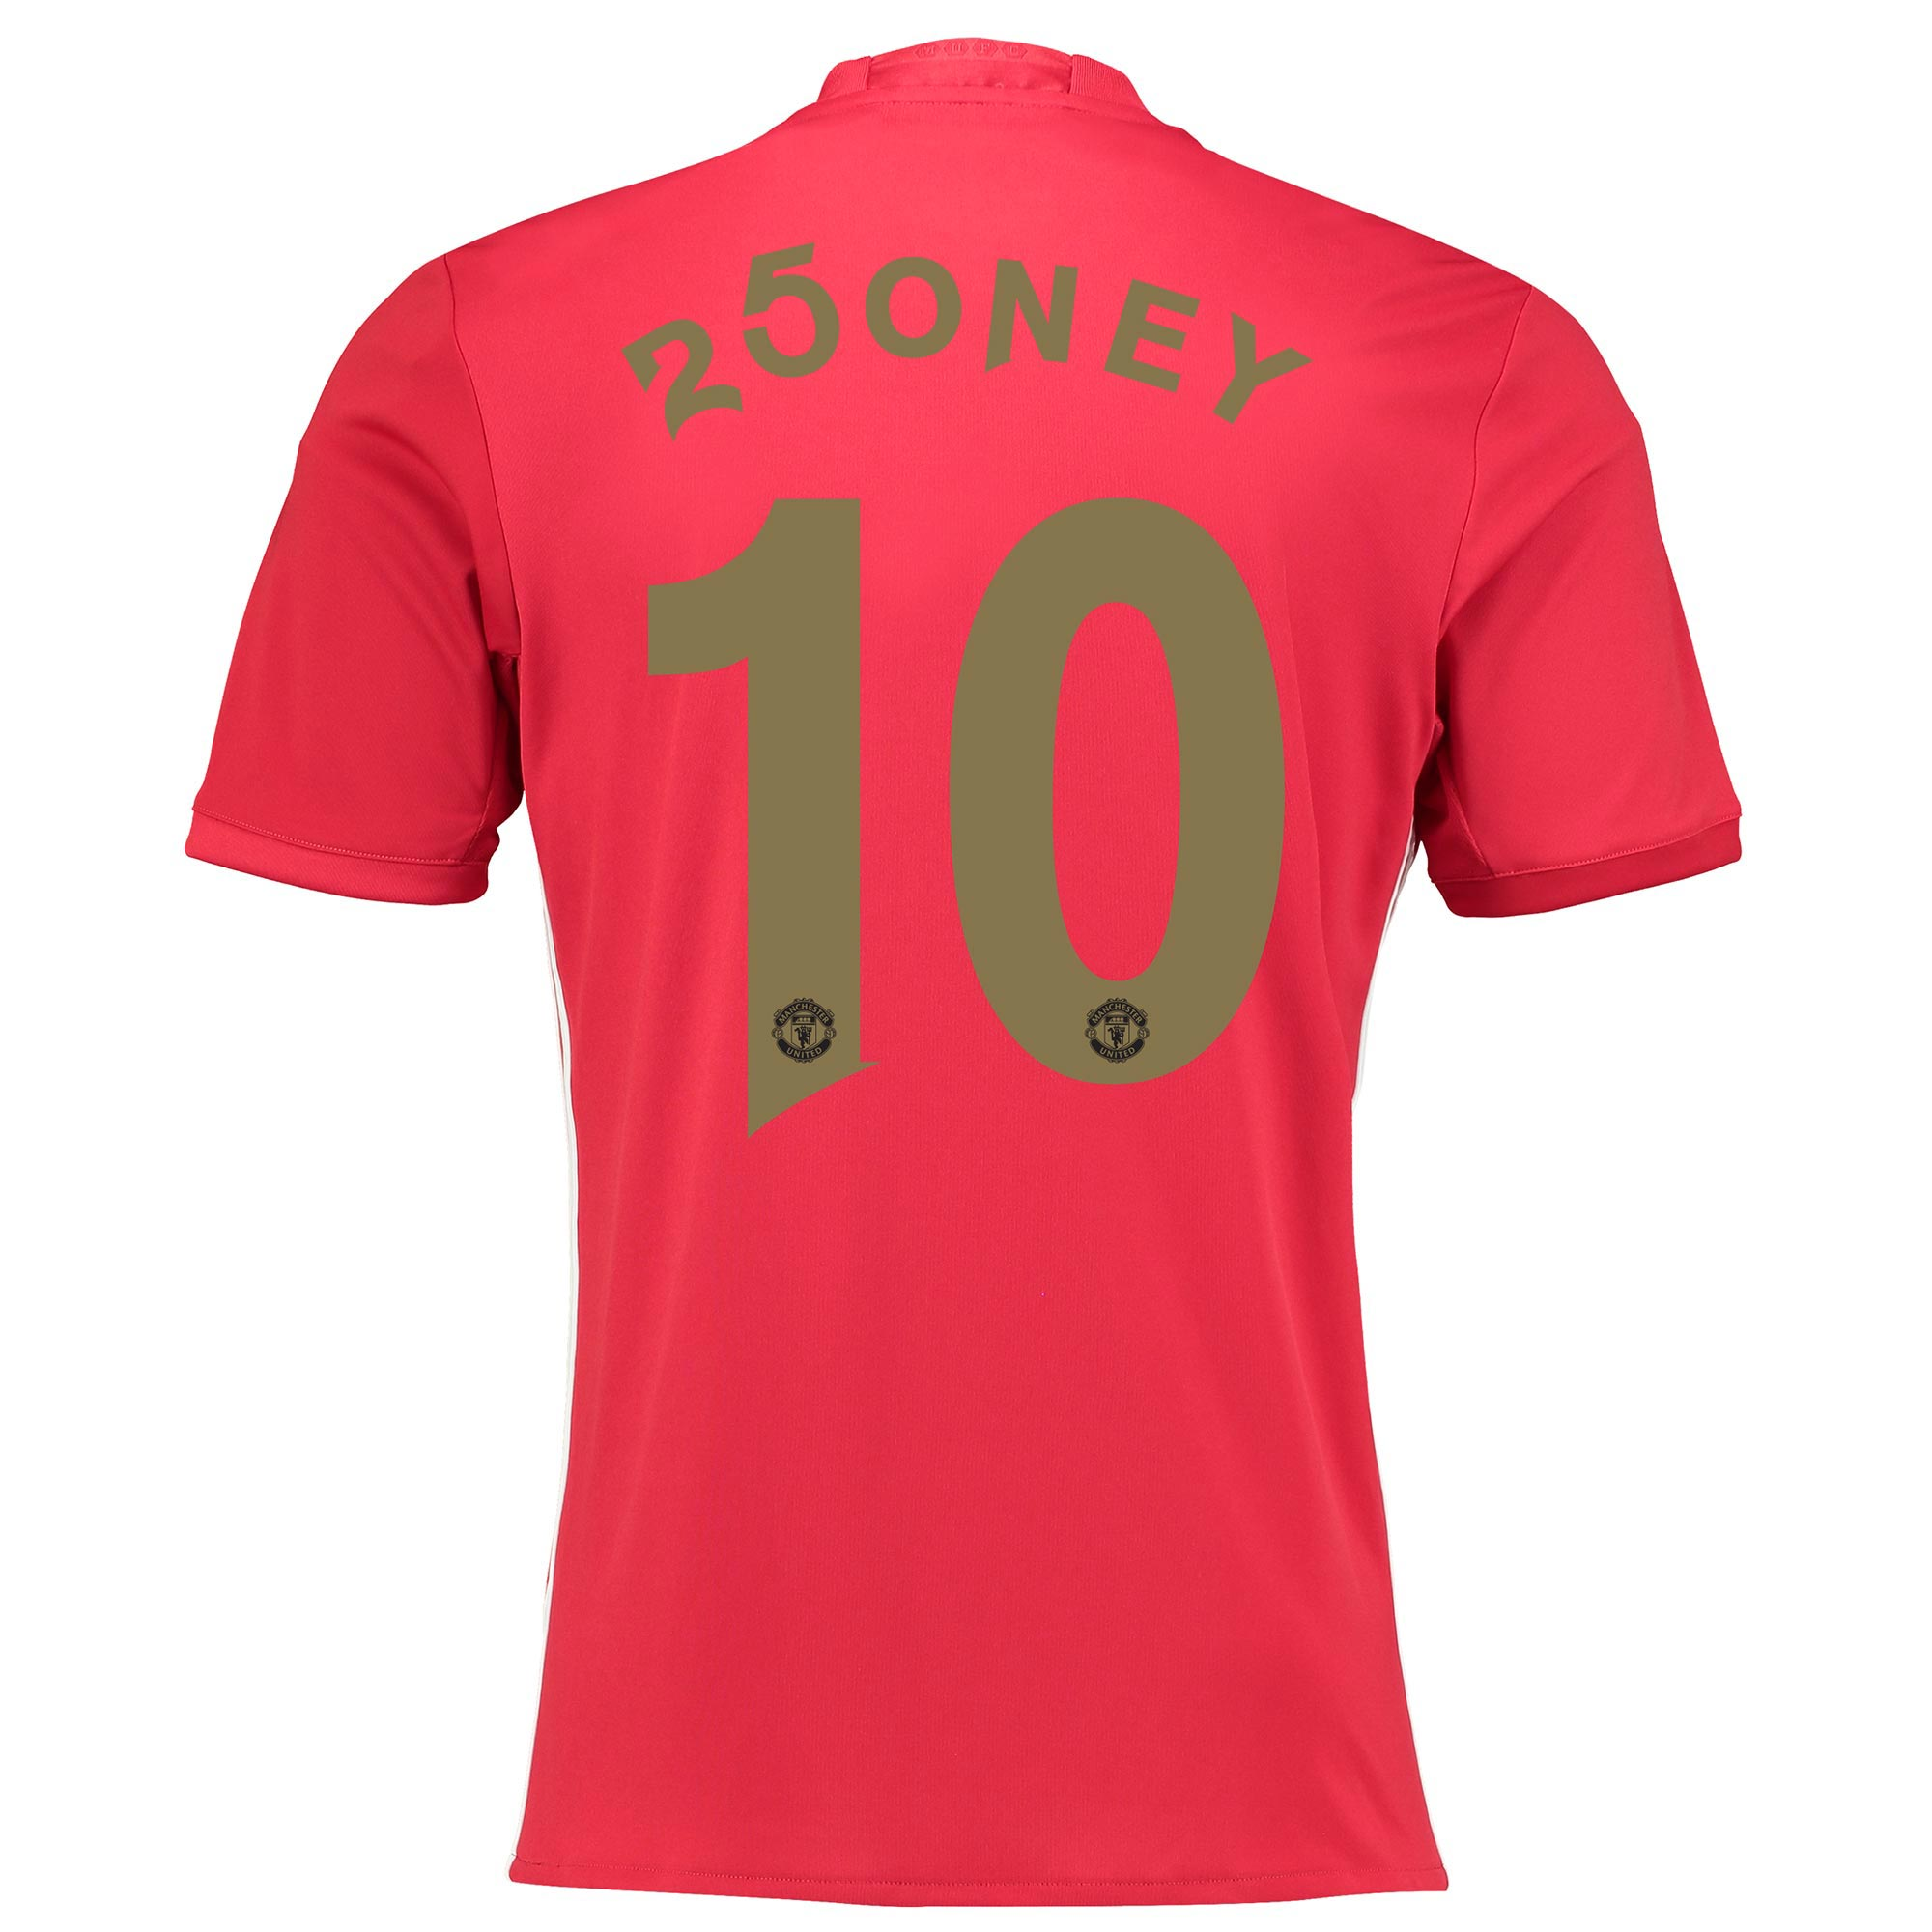 Manchester United Home Shirt 2016-17 with 250ney 10 printing